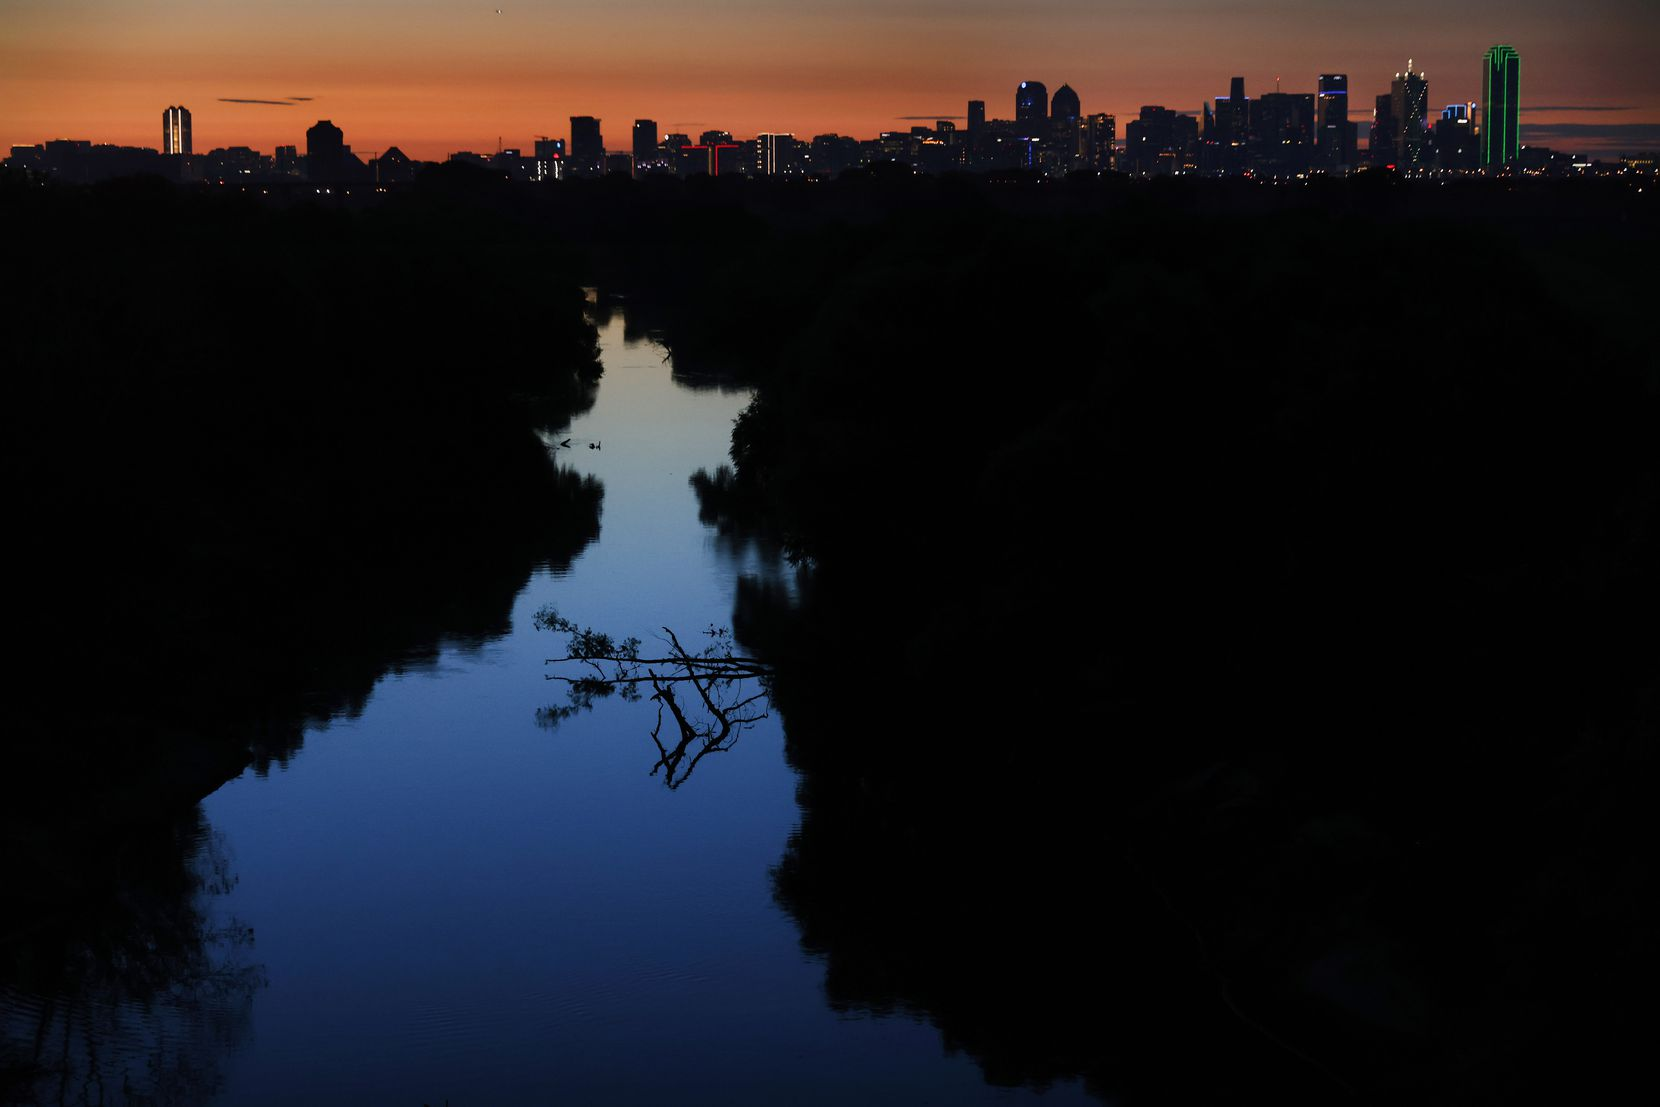 The sun rises over the Trinity River near the Westmoreland bridge, early Monday morning, August 30, 2021. The river is known for containing large alligator gar fish. Odell Allen and his wife Beverly Rasnick fish for the massive gar. The viral videos of him catching 6-7 footers have made Dallas a popular spot for anglers all over the world who want to hook a gar. It has also led to overfishing of the native species, TPWD says. Texas Parks and Wildlife Department is adding new regulations to limit how many gar each angler can harvest in a year. Allen catches and releases his gar. (Tom Fox/The Dallas Morning News)